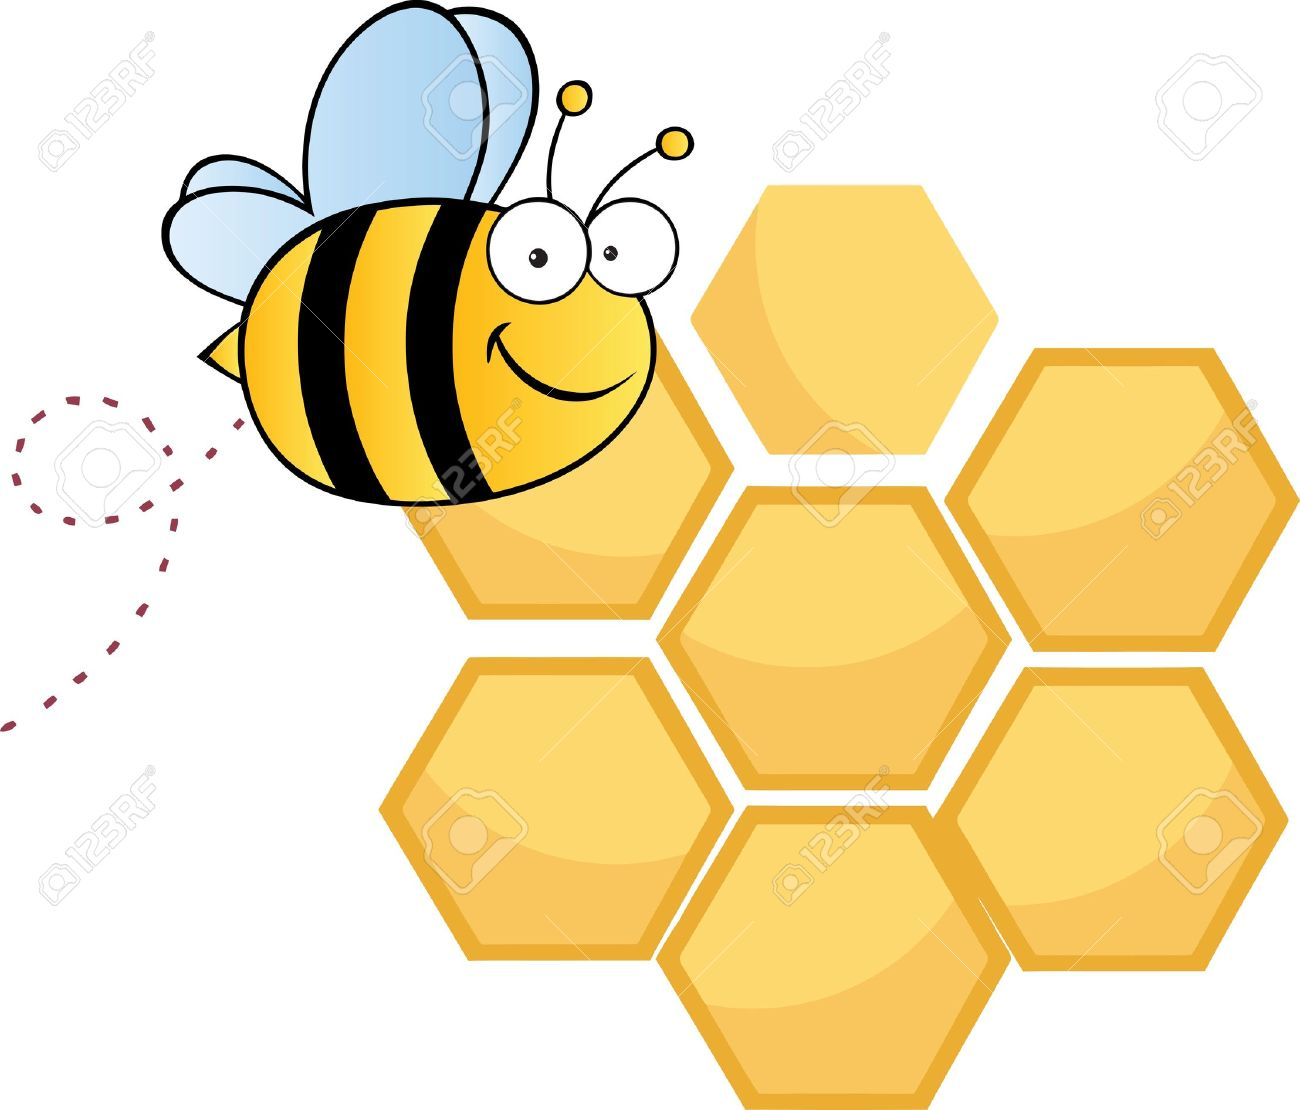 Bees clipart orange Clipart Bees Bees Flying Download